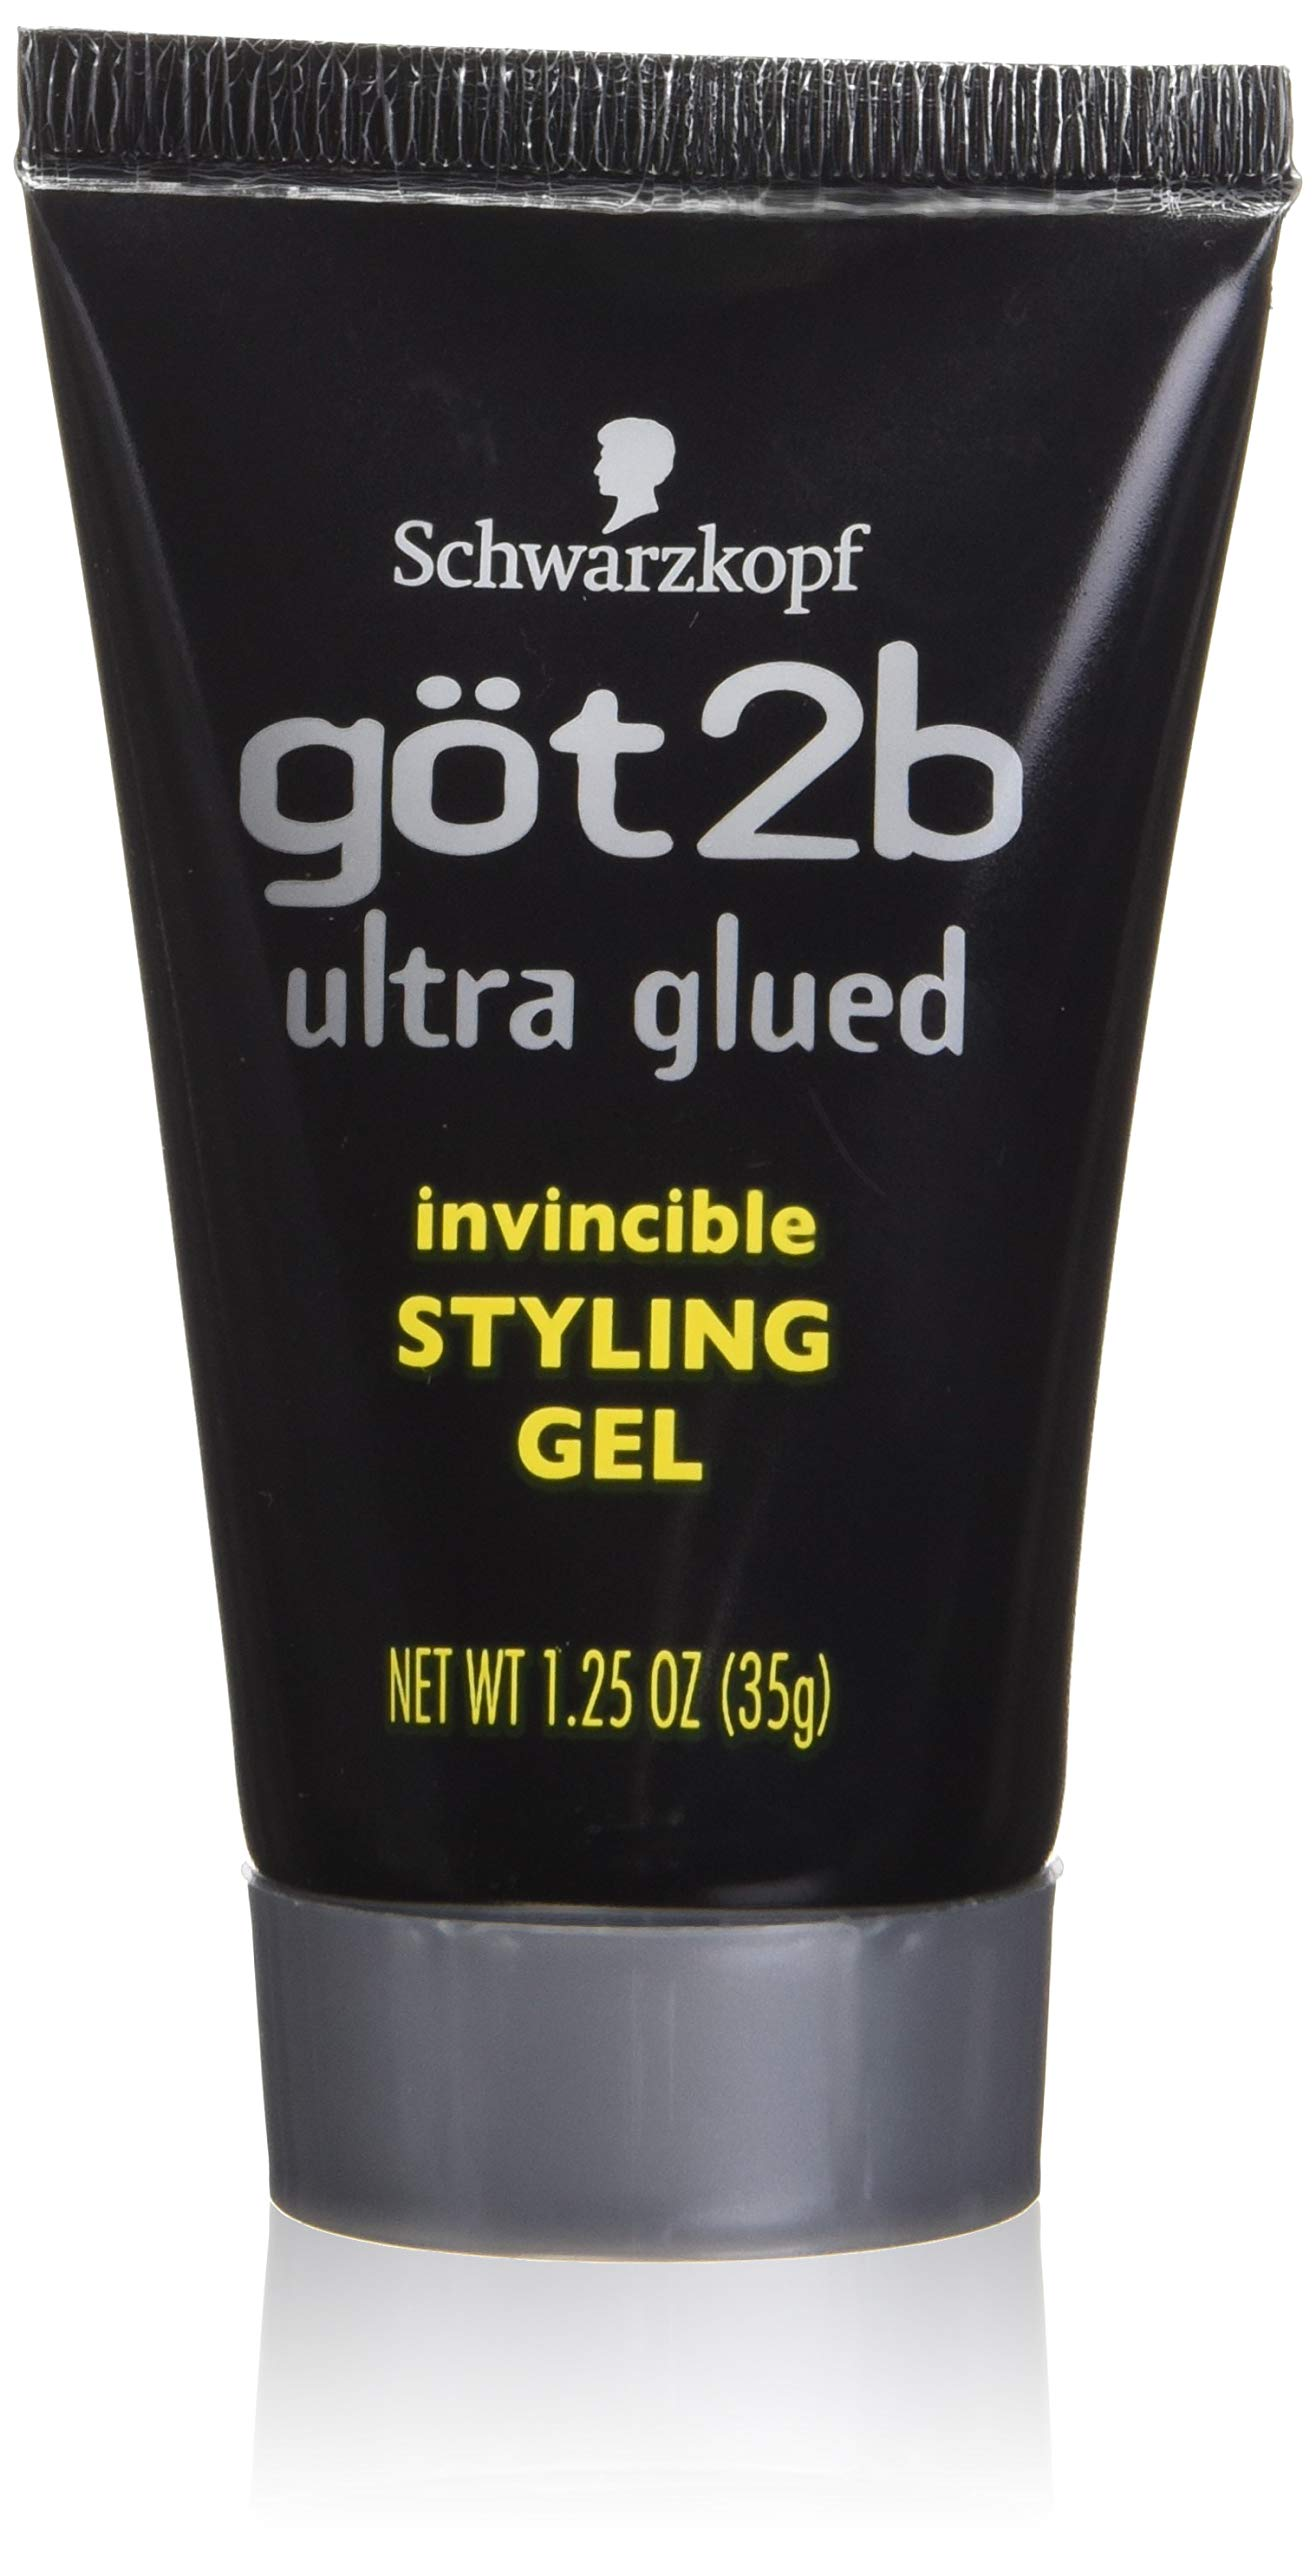 Got 2b Ultra Glued Invincible Styling Gel, 1.25